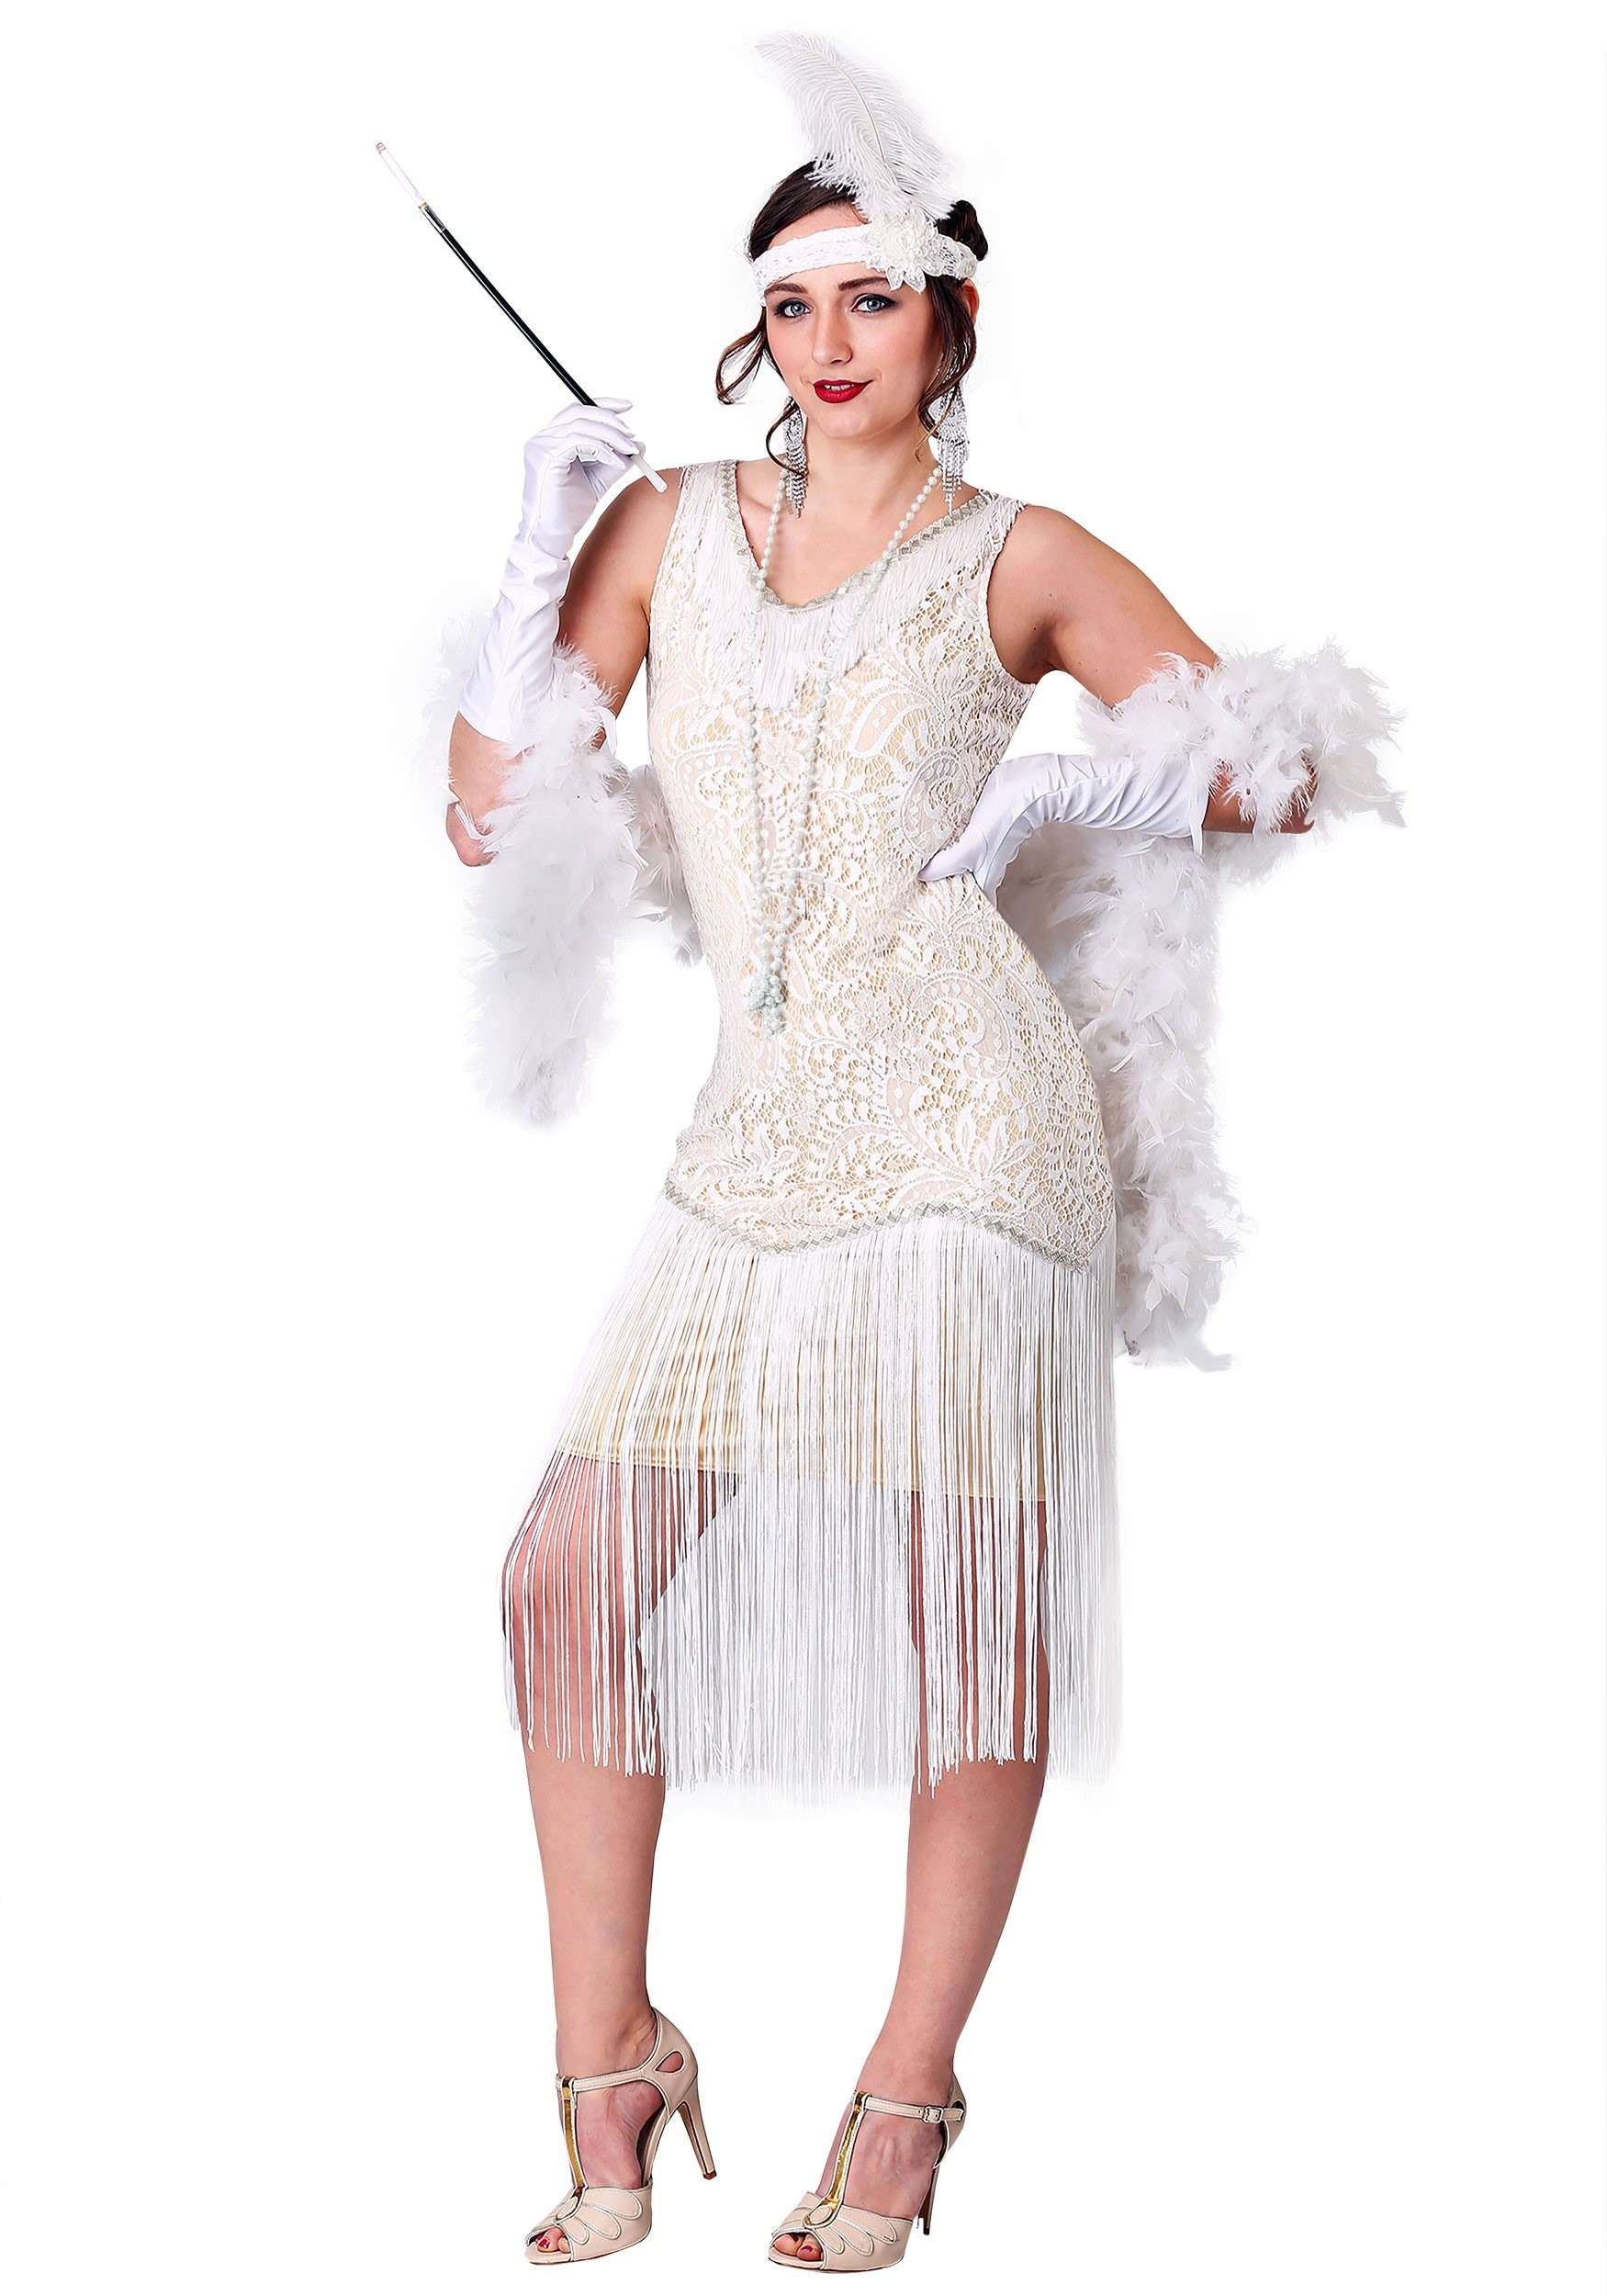 713b19f2b8b3 Women's White Fringe Flapper Costume Update Main